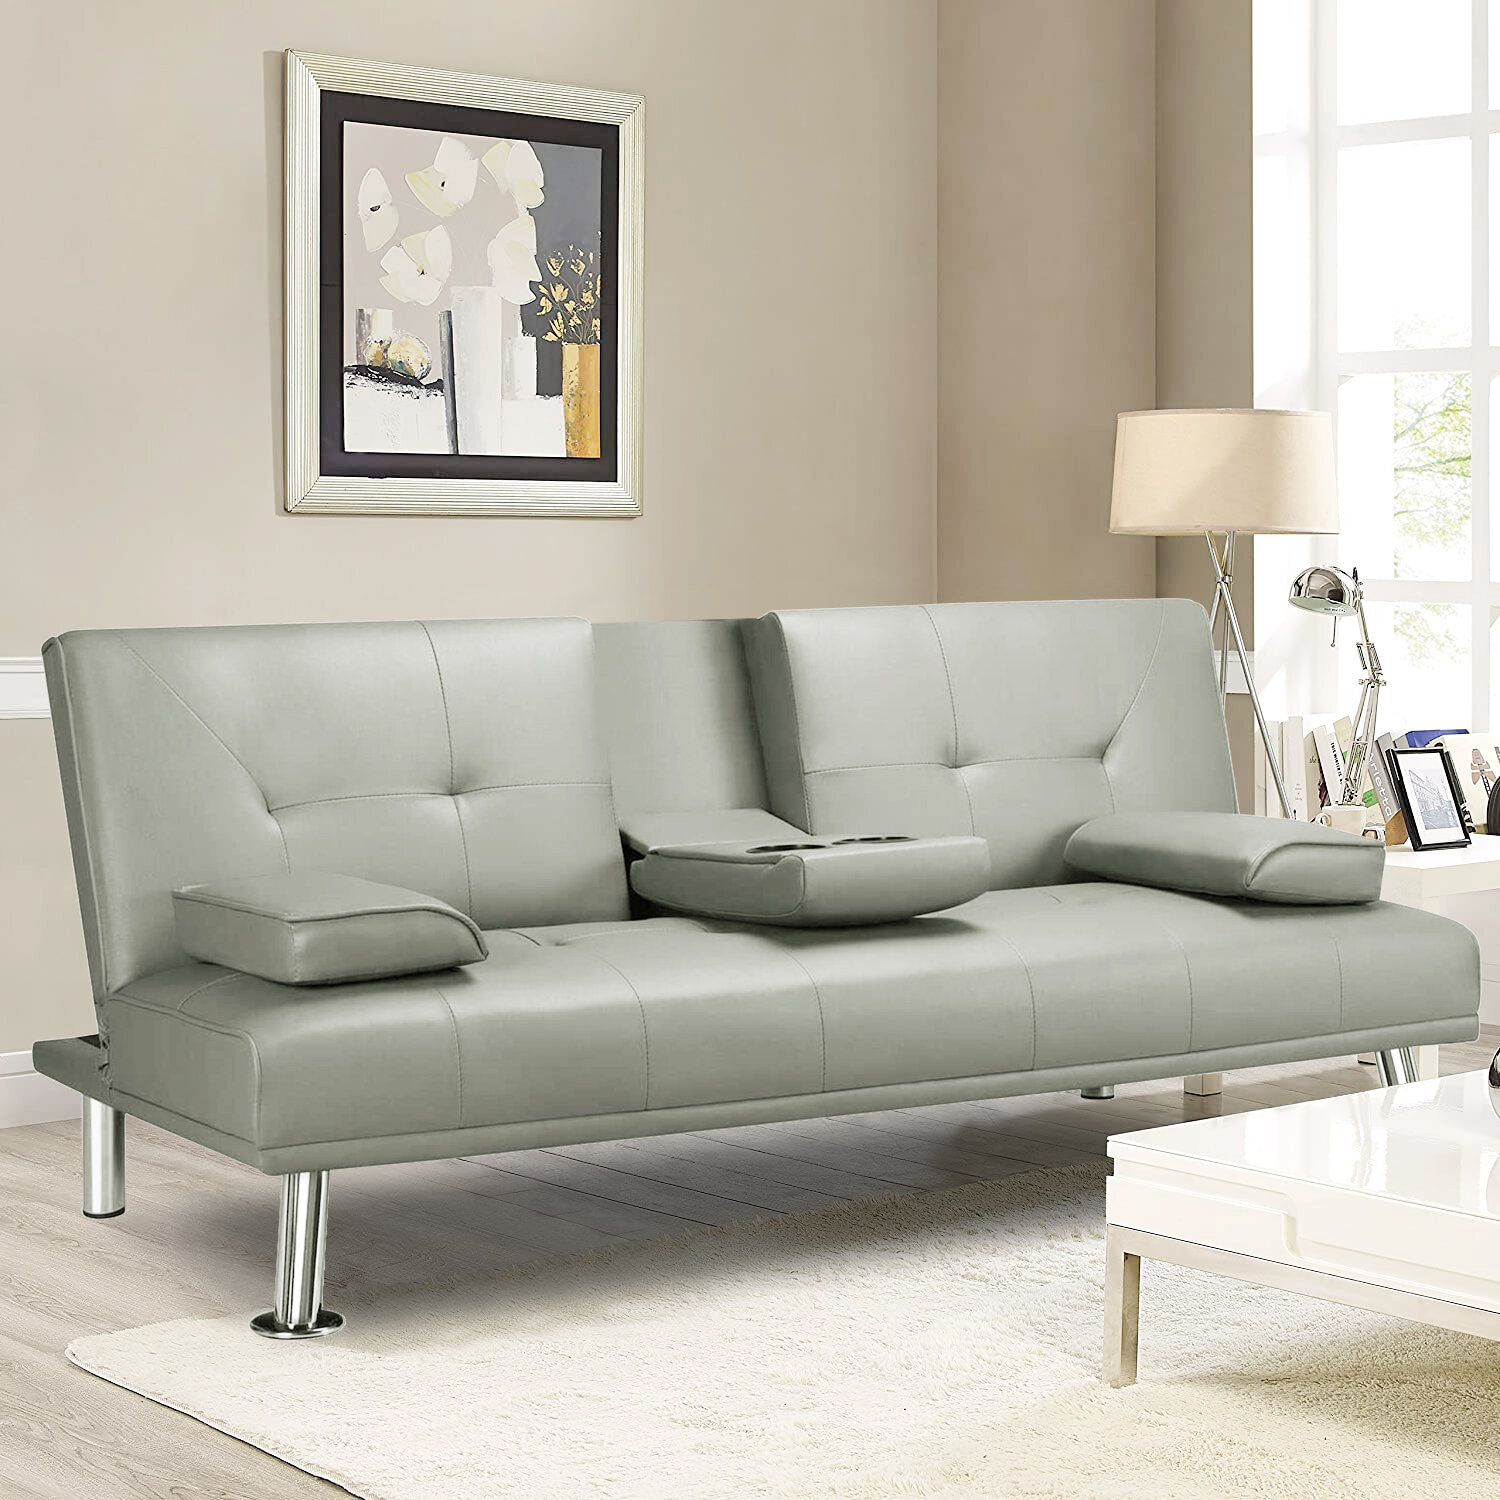 Latitude Run Modern Faux Leather Sofa Bed Convertible Sofa Couch Sleeper With Armrest Home Recliner Couch Home Furniture For Small Space Living Room Light Grey Reviews Wayfair Ca